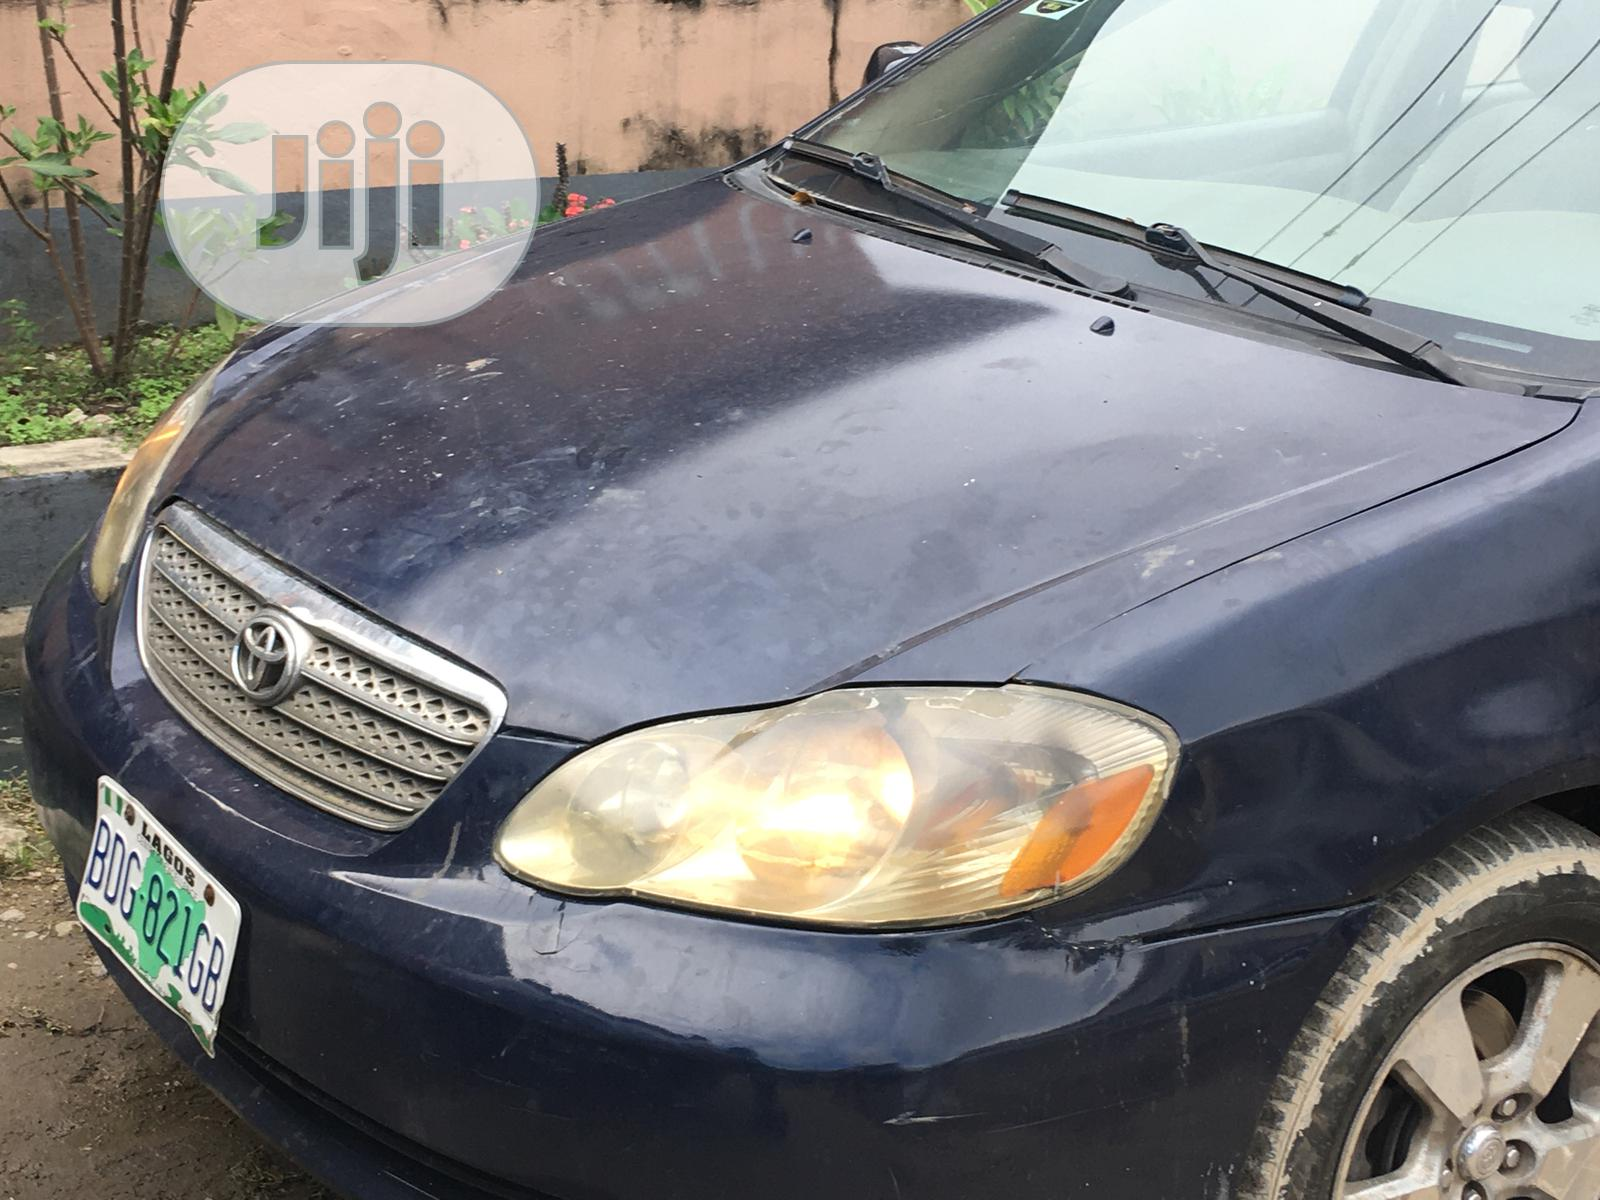 Toyota Corolla 2003 Blue In Surulere Cars Abdul Jiji Ng For Sale In Surulere Buy Cars From Abdul On Jiji Ng